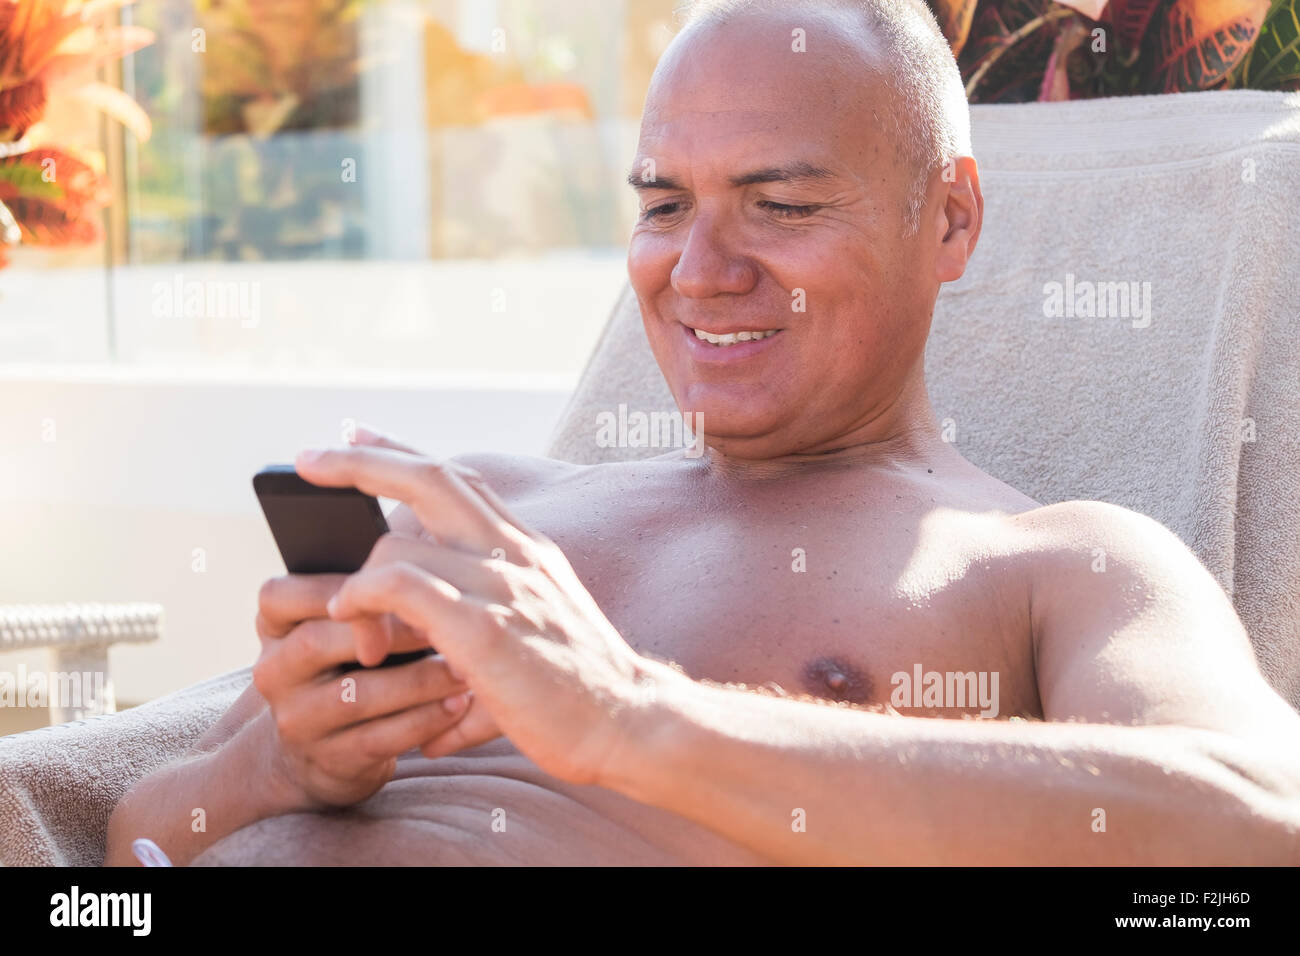 Smiling holidaymaker looking at his smartphone - Stock Image